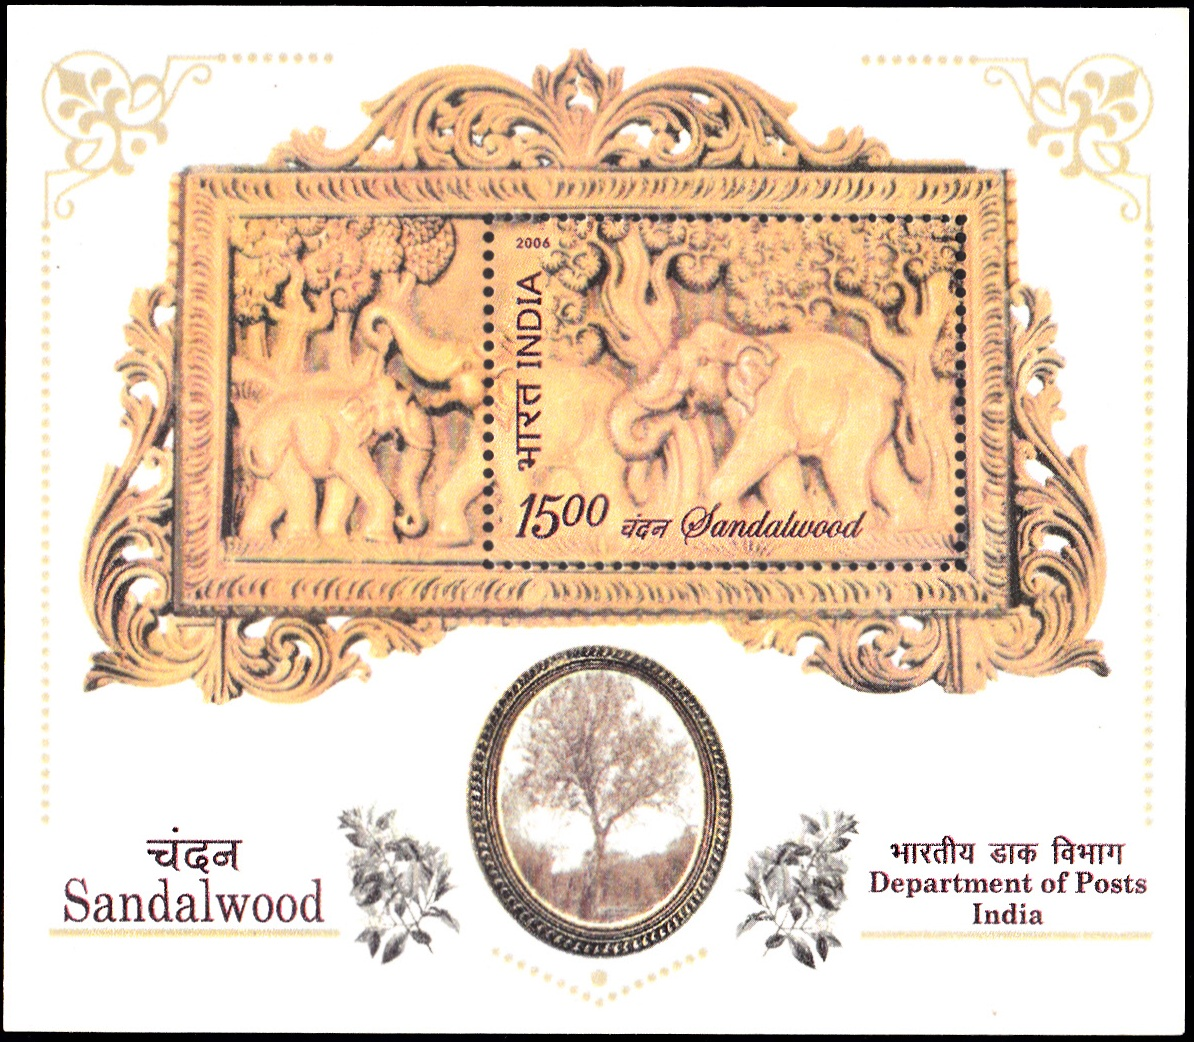 2236 Sandalwood [India Miniature Sheet 2006] Scented Stamp